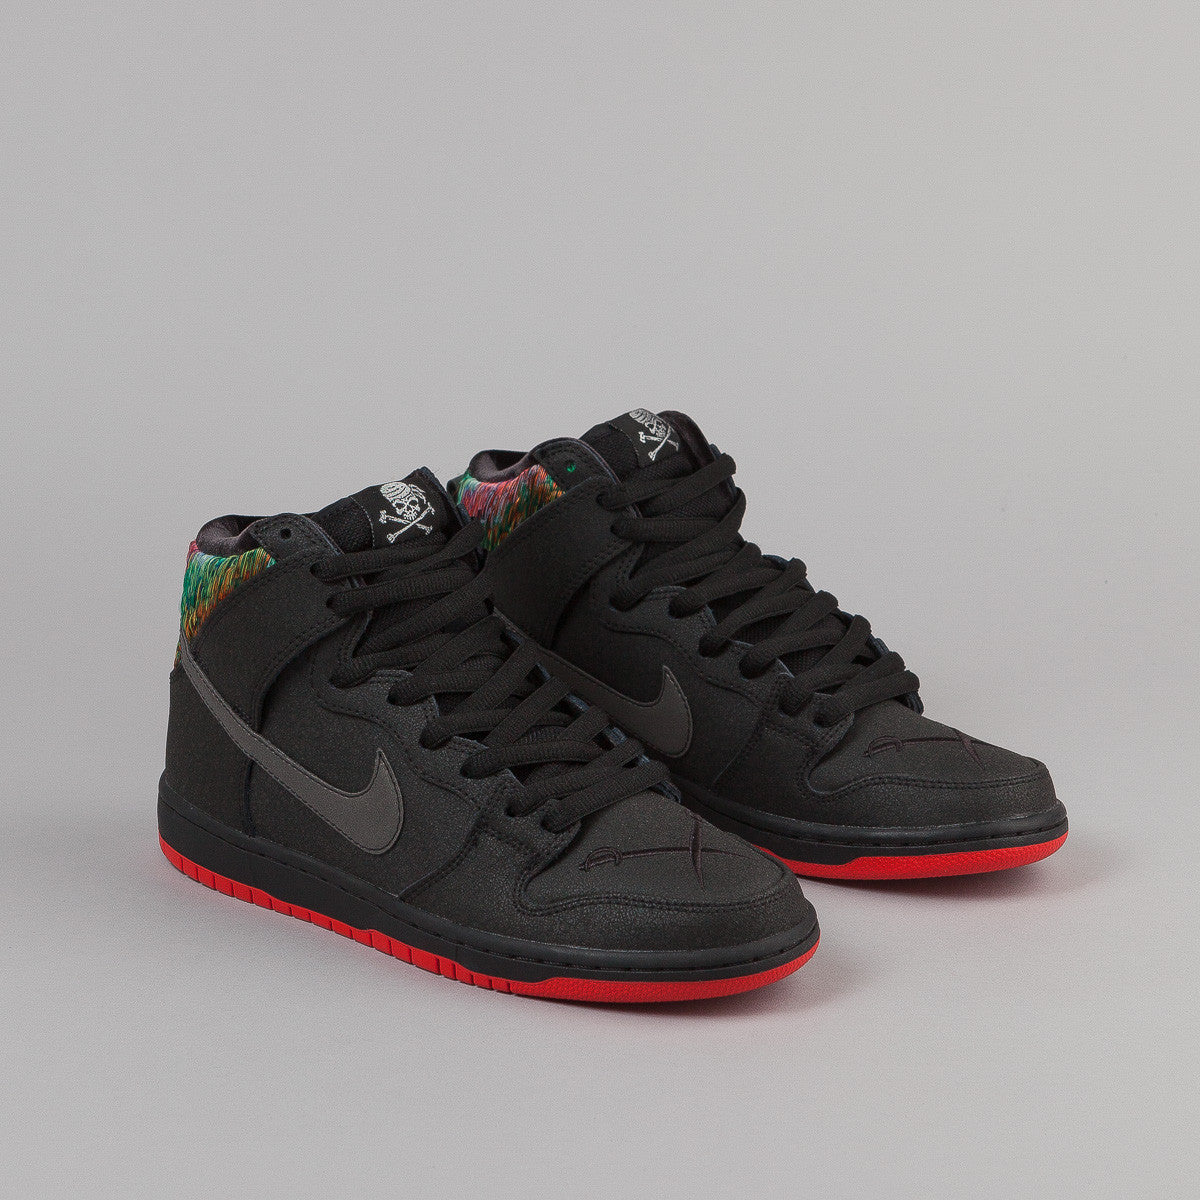 Nike SB Dunk High Pro Shoes - Black / Black - Challenge Red - Metallic Silver